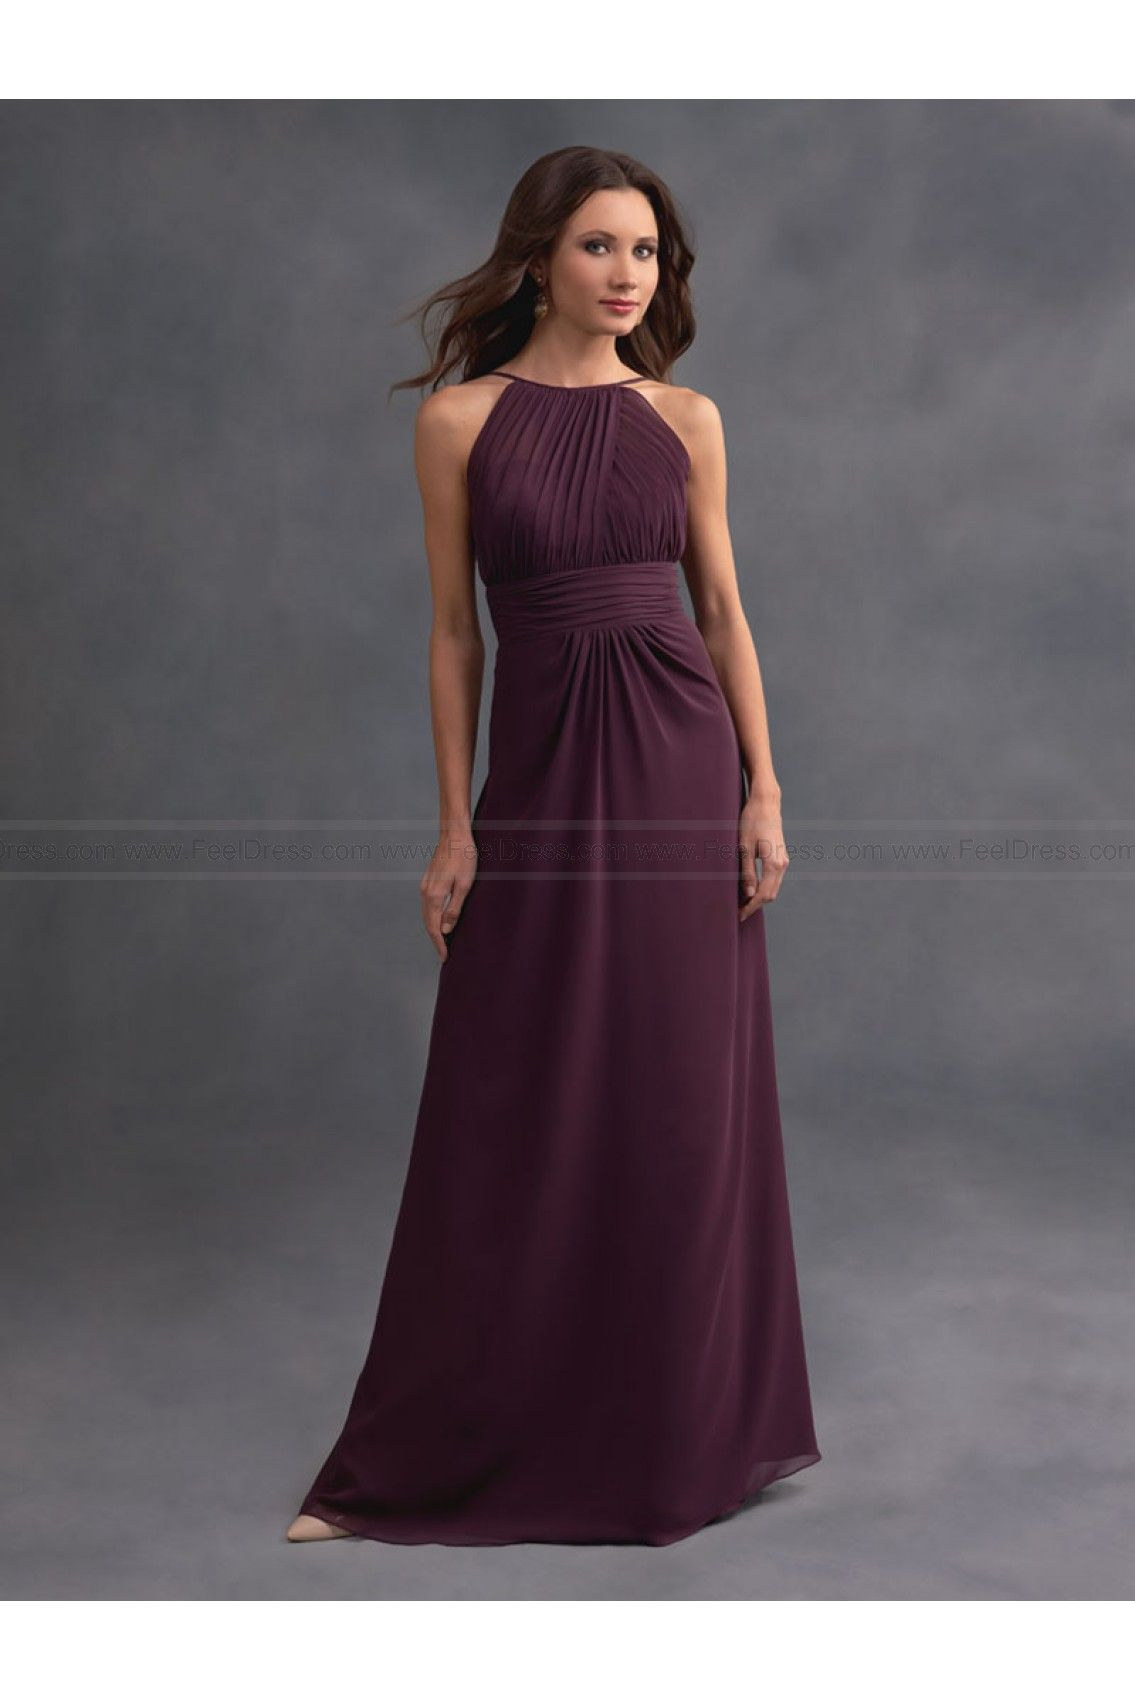 Alfred angelo bridesmaid dress style 7401l new alfred angelo alfred angelo bridesmaid dress style 7401l new ombrellifo Images